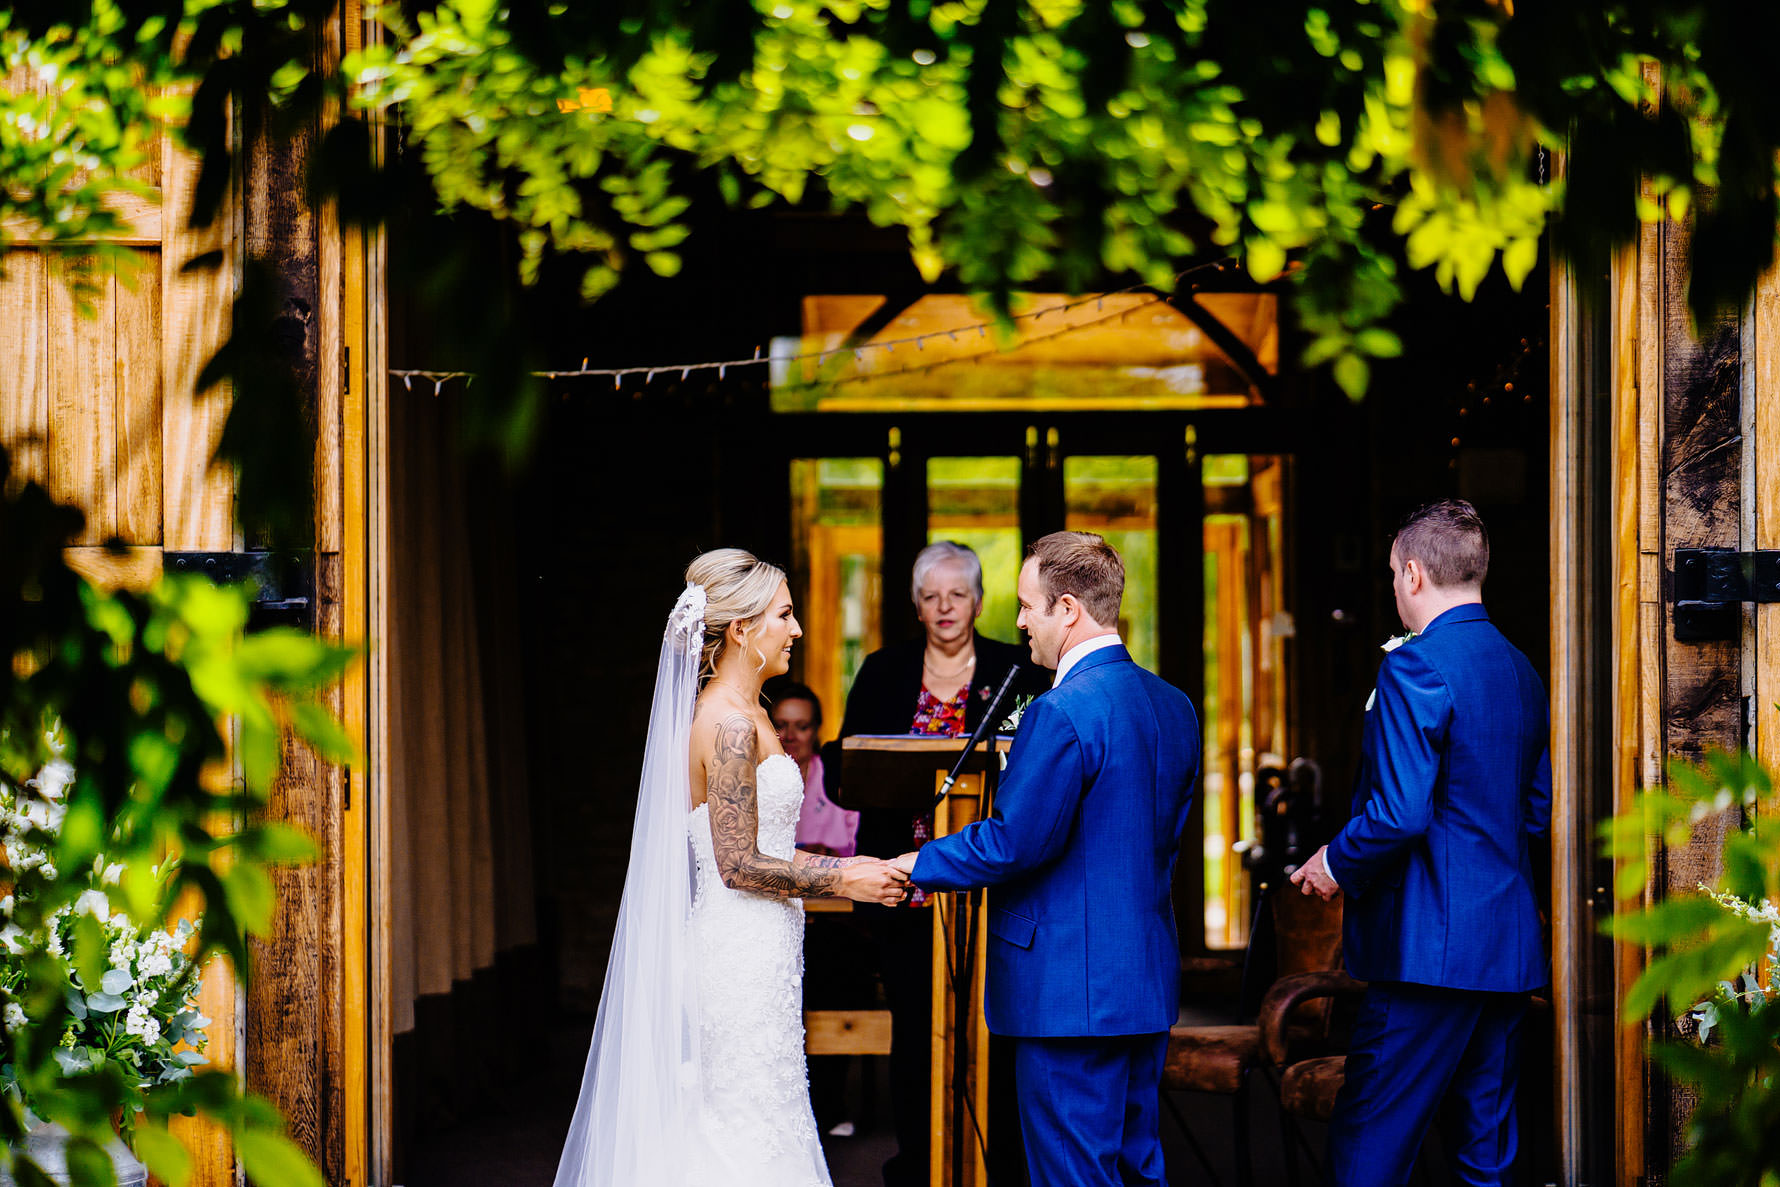 a lovely moment between a bride and groom